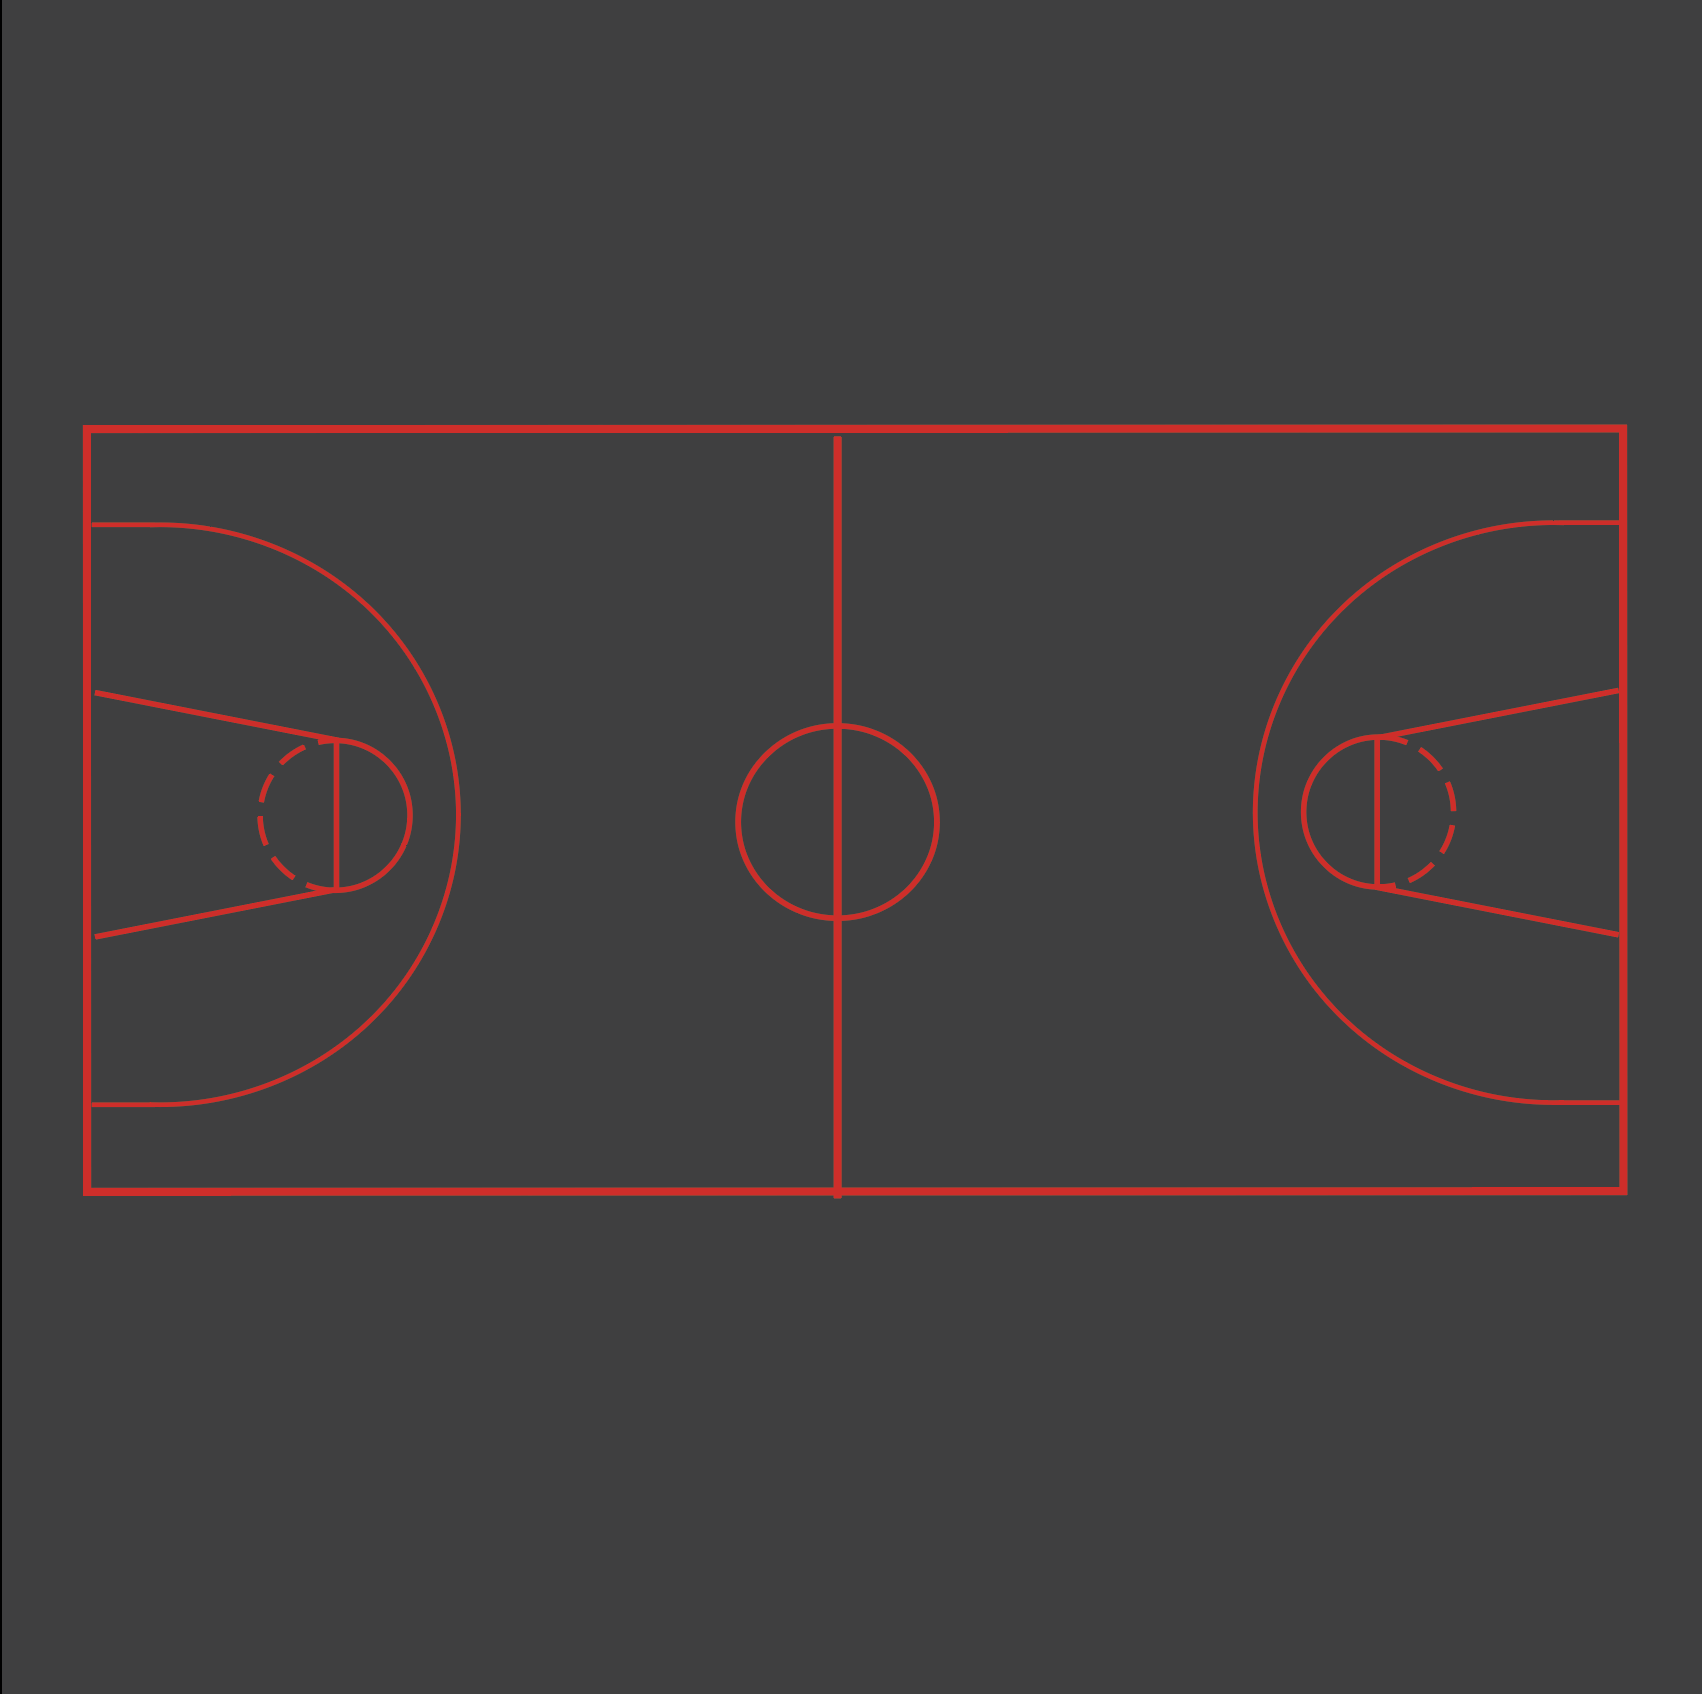 Image of a Basketball Court Playground Marking